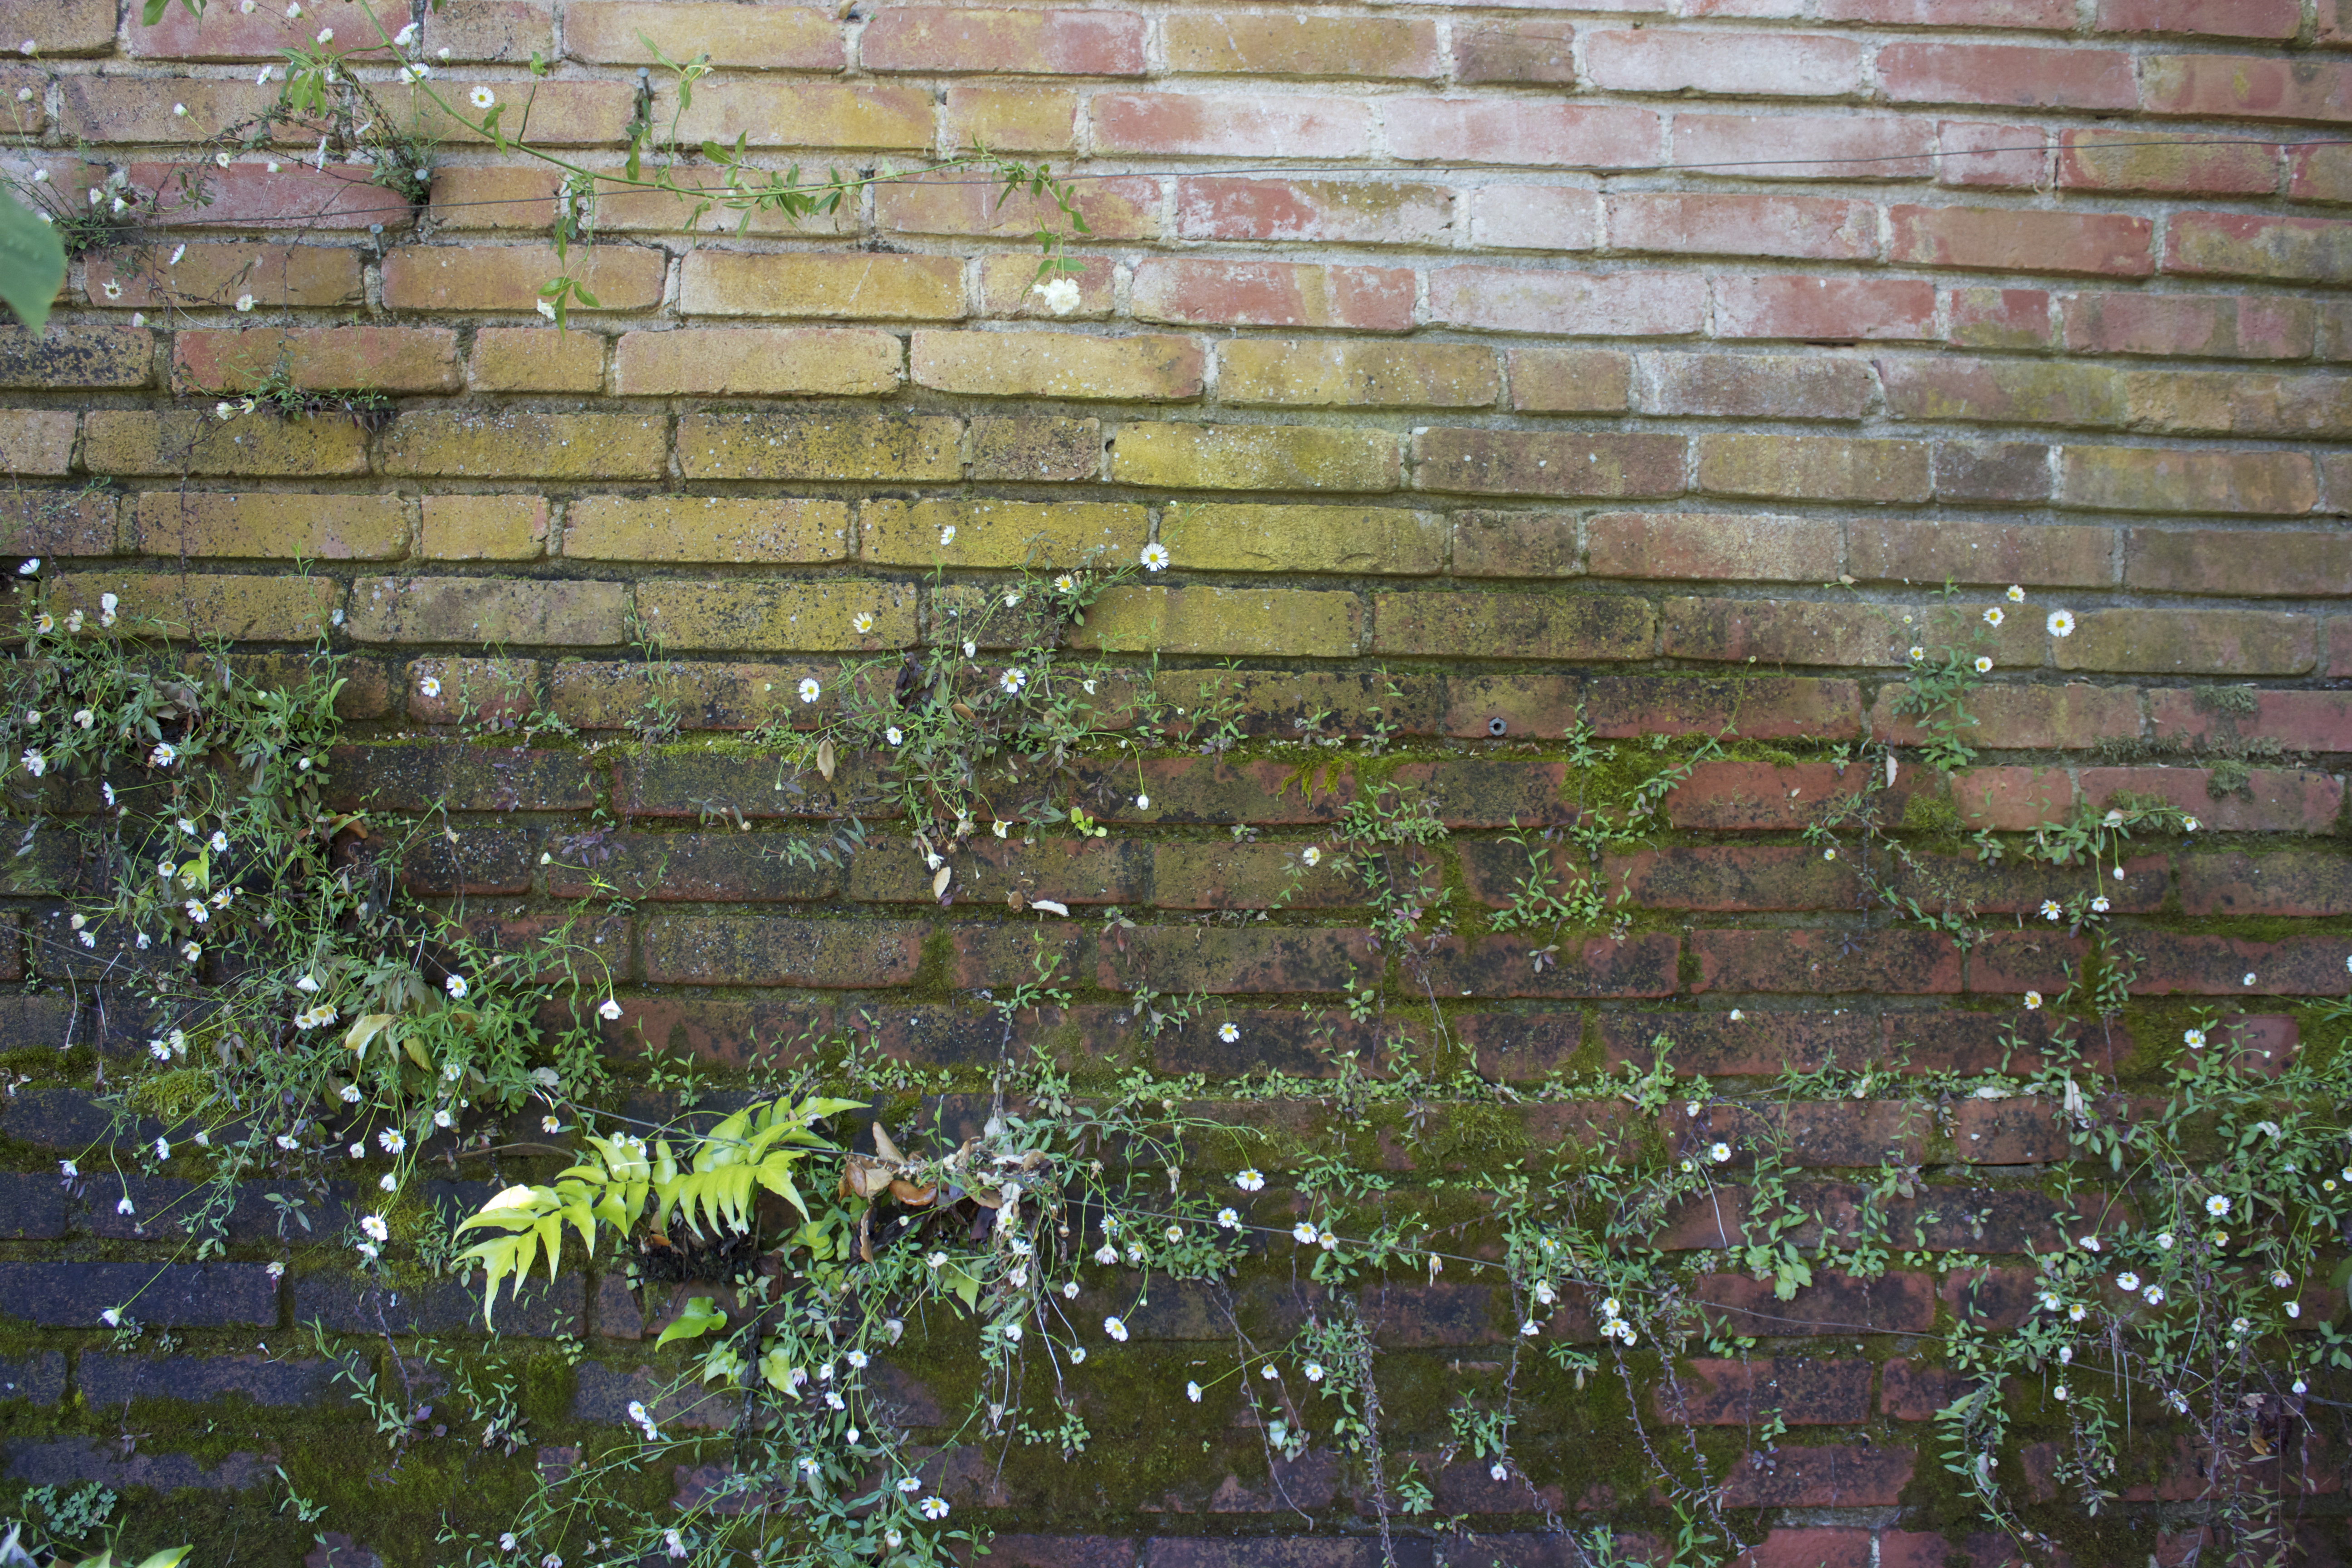 Flowers, leaves and moss growing on a brick wall.